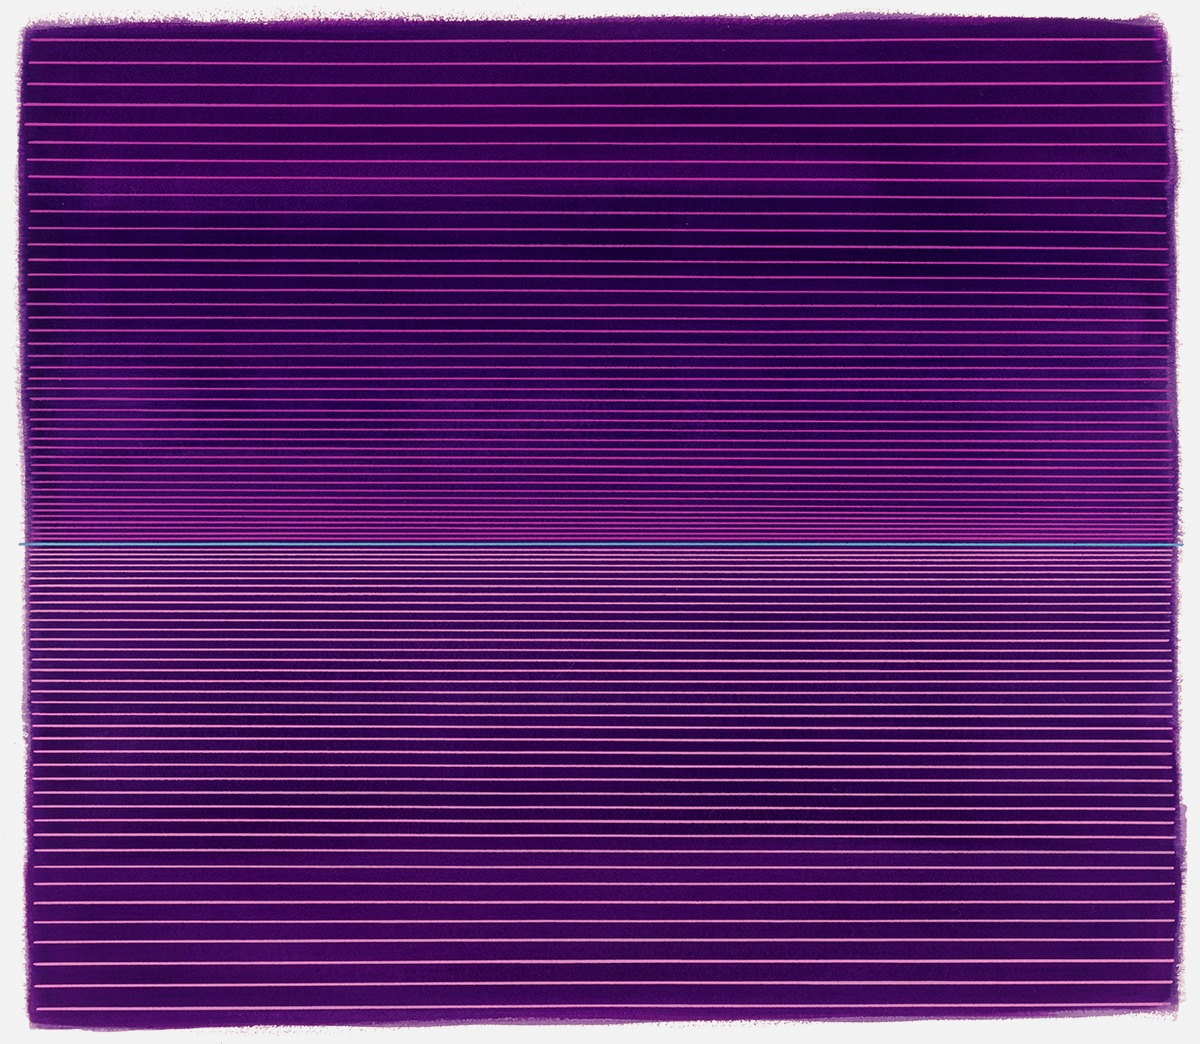 The 2018 Pantone Color Of The Year Is Ultra Violet Don T Mistake It